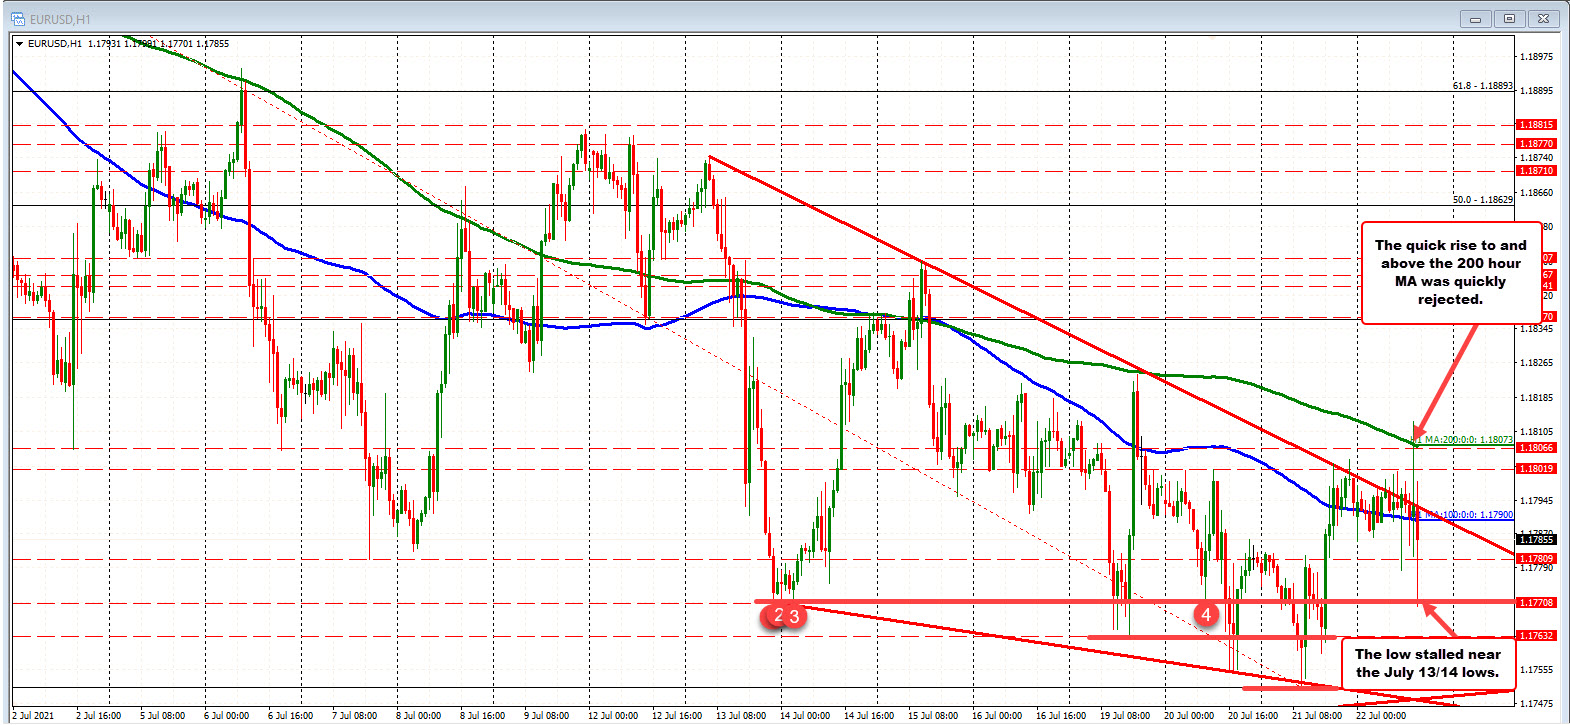 EURUSDtrades above and below its 100 hour moving average